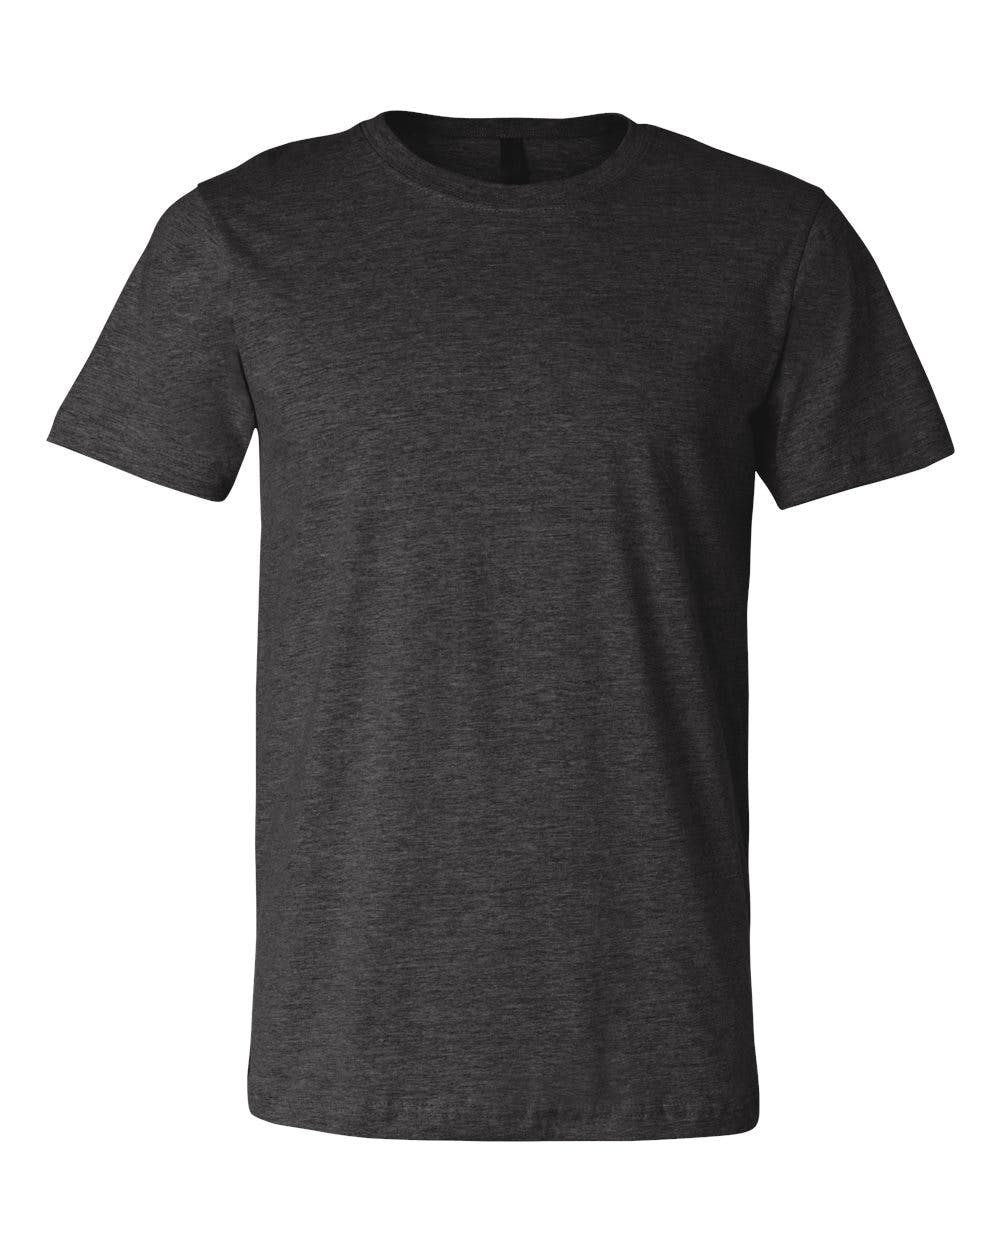 Canvas 3001 Promotional shirt sold by Grandstand Glassware and Apparel